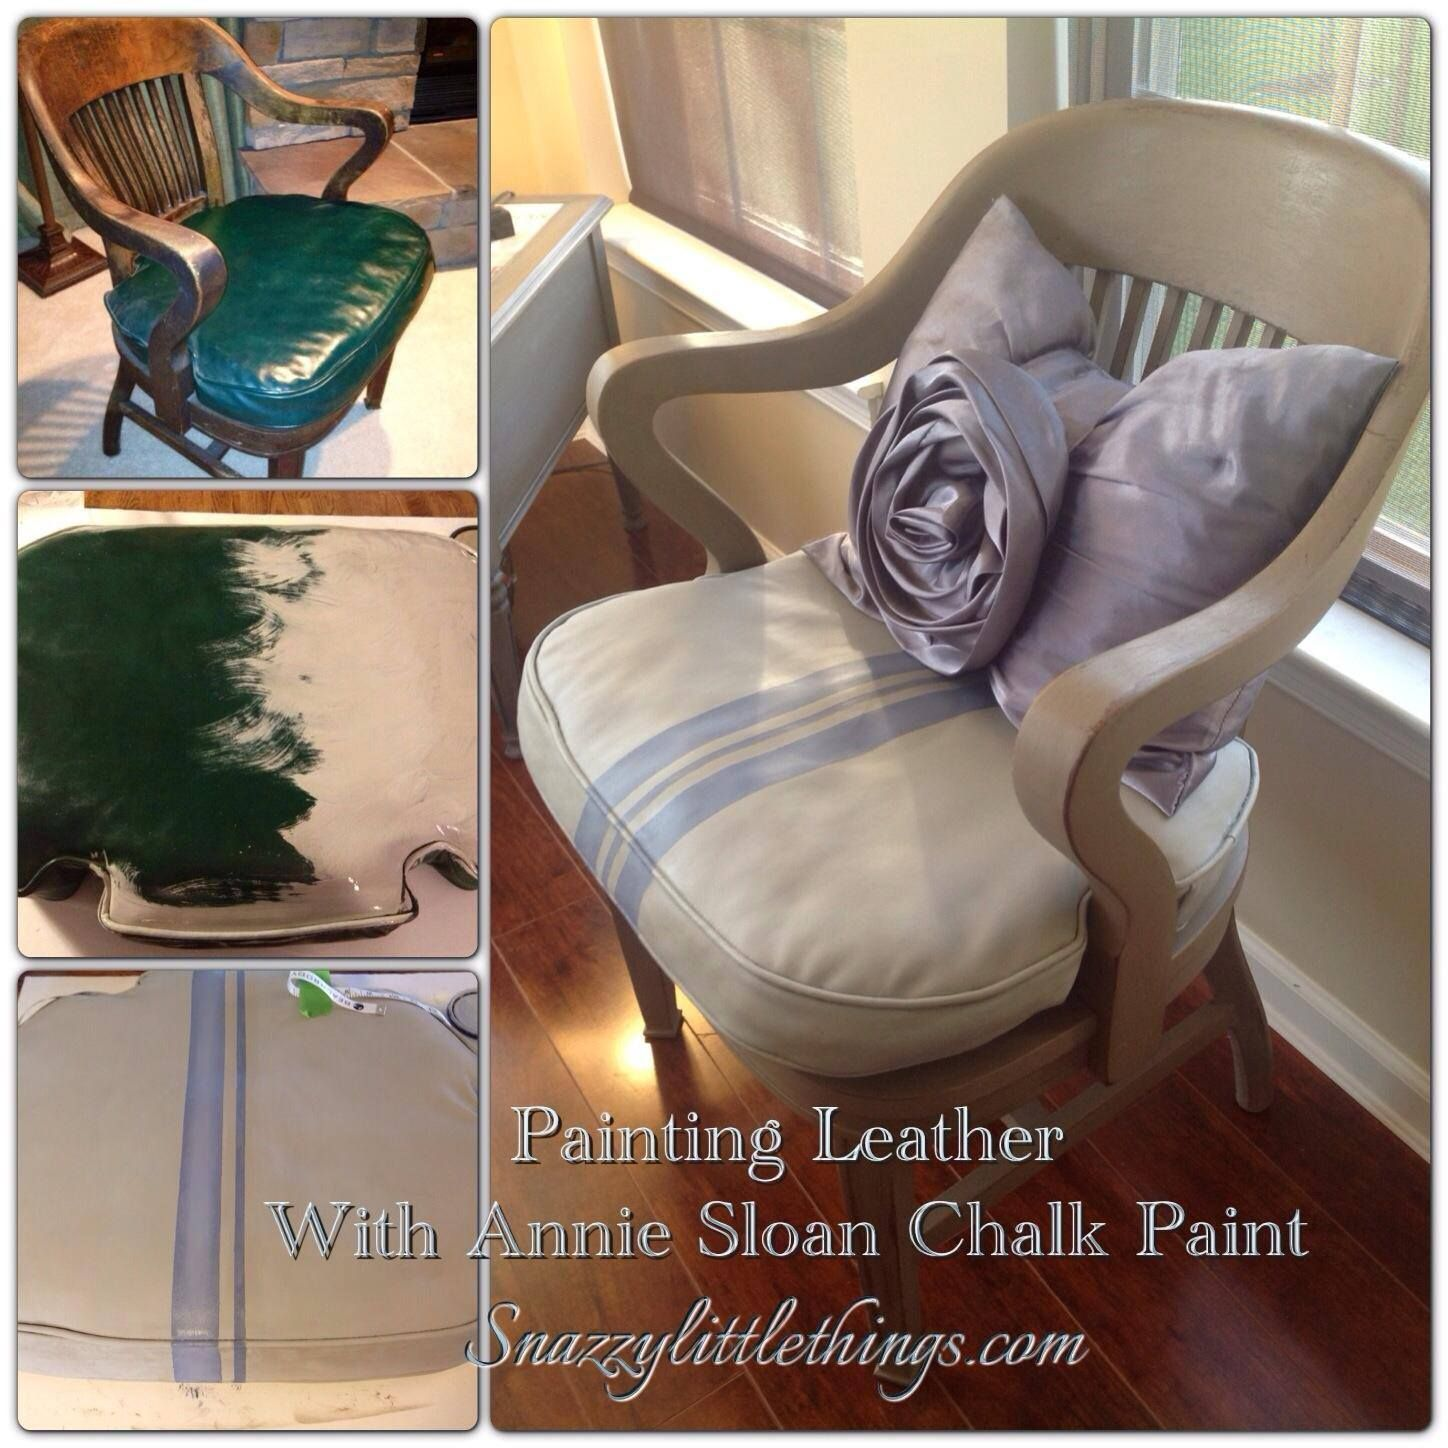 DIY Painting Leather